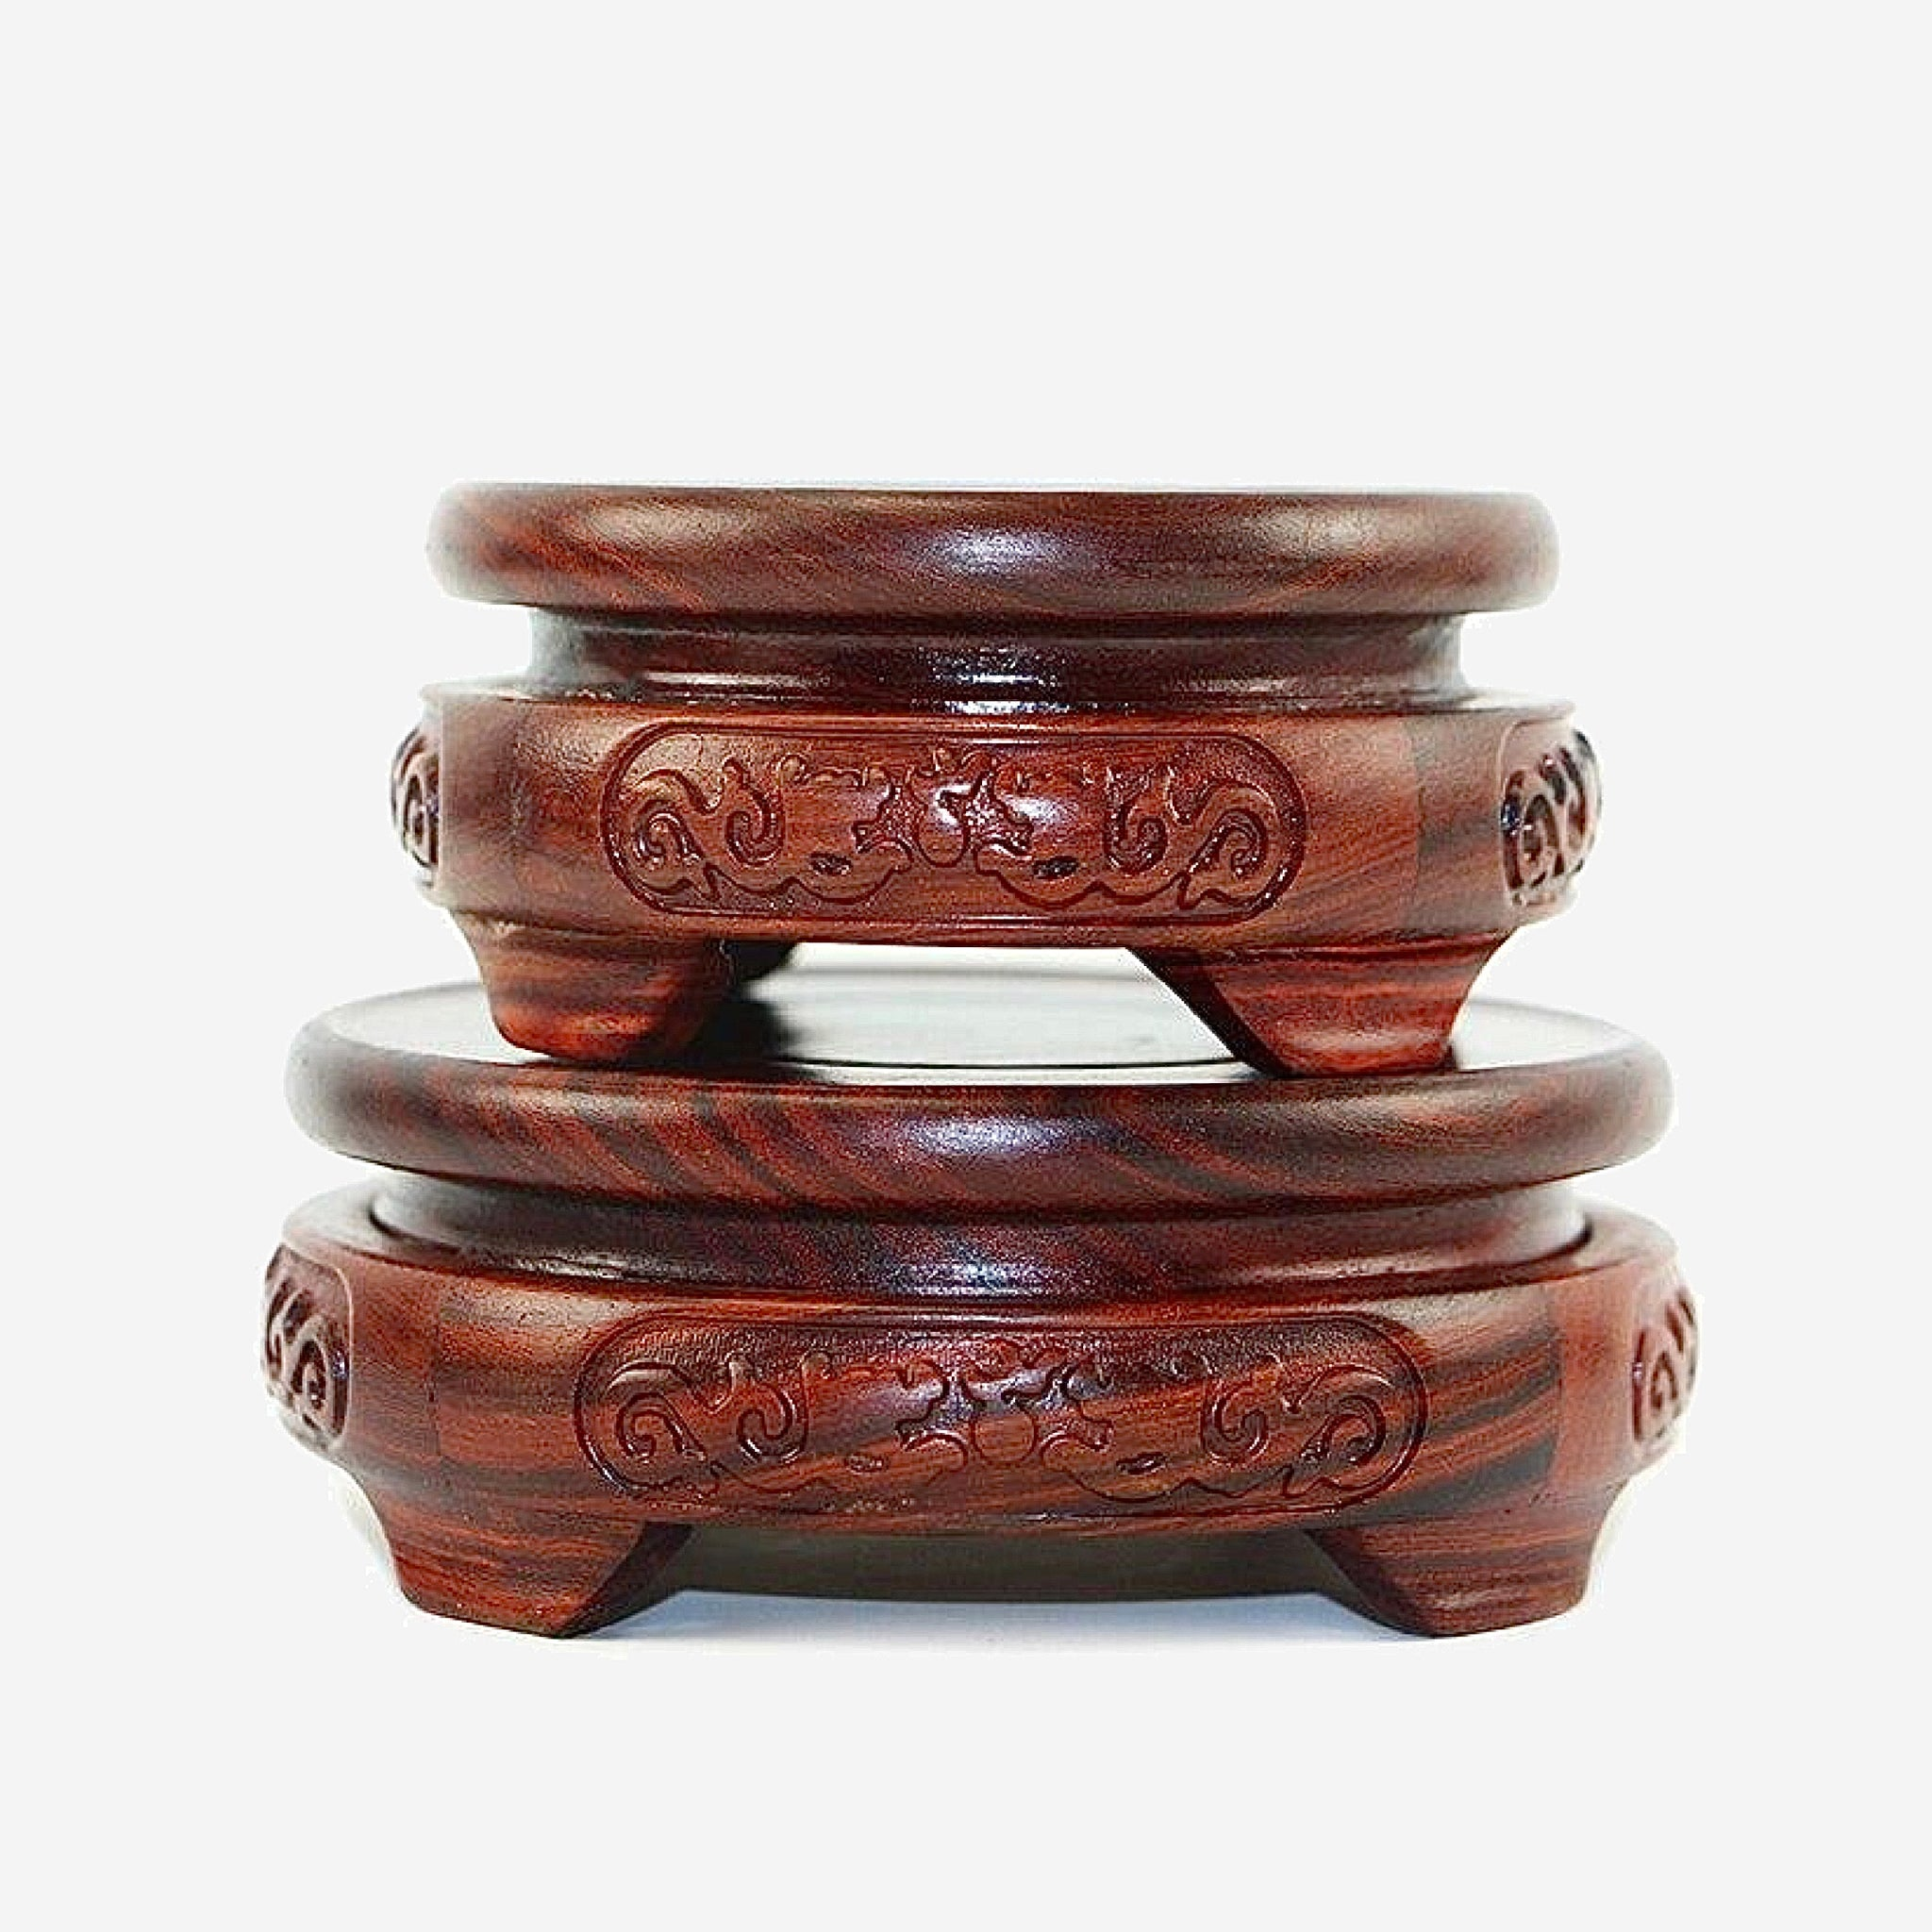 Red Sandalwood Statue Base   6.5-11.5cm Diameter Double Carved Dragon Stone Vase Buddha Incense Flowerpot Wood Carving Teapot Bases Trending Style